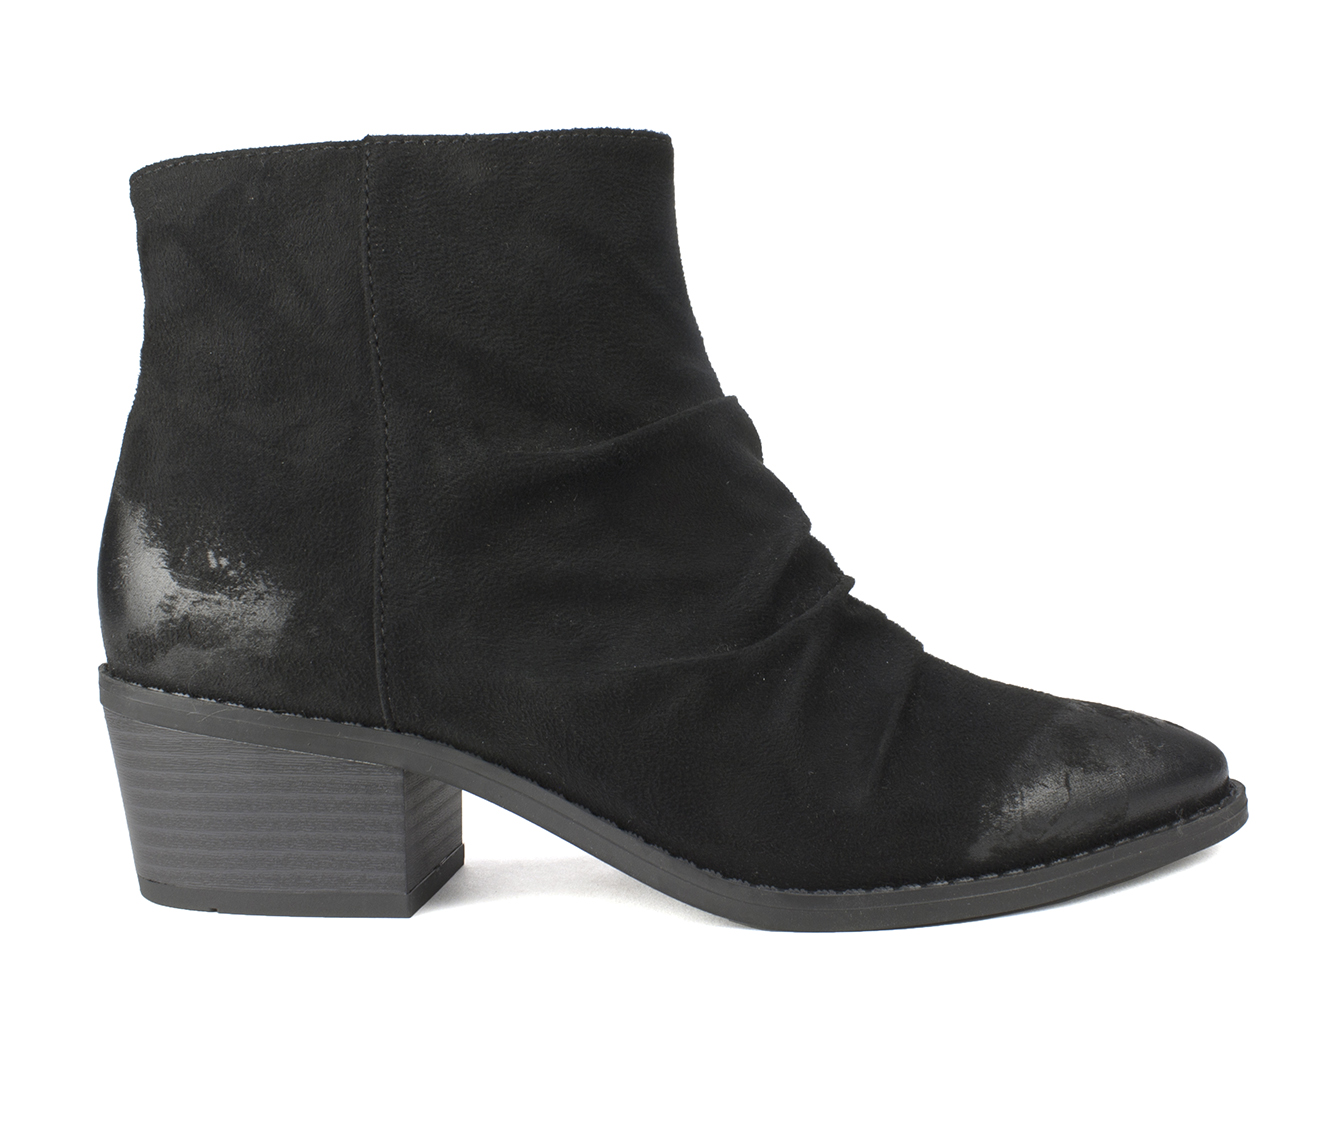 White Mountain Carriden Women's Boots (Black - Suede)